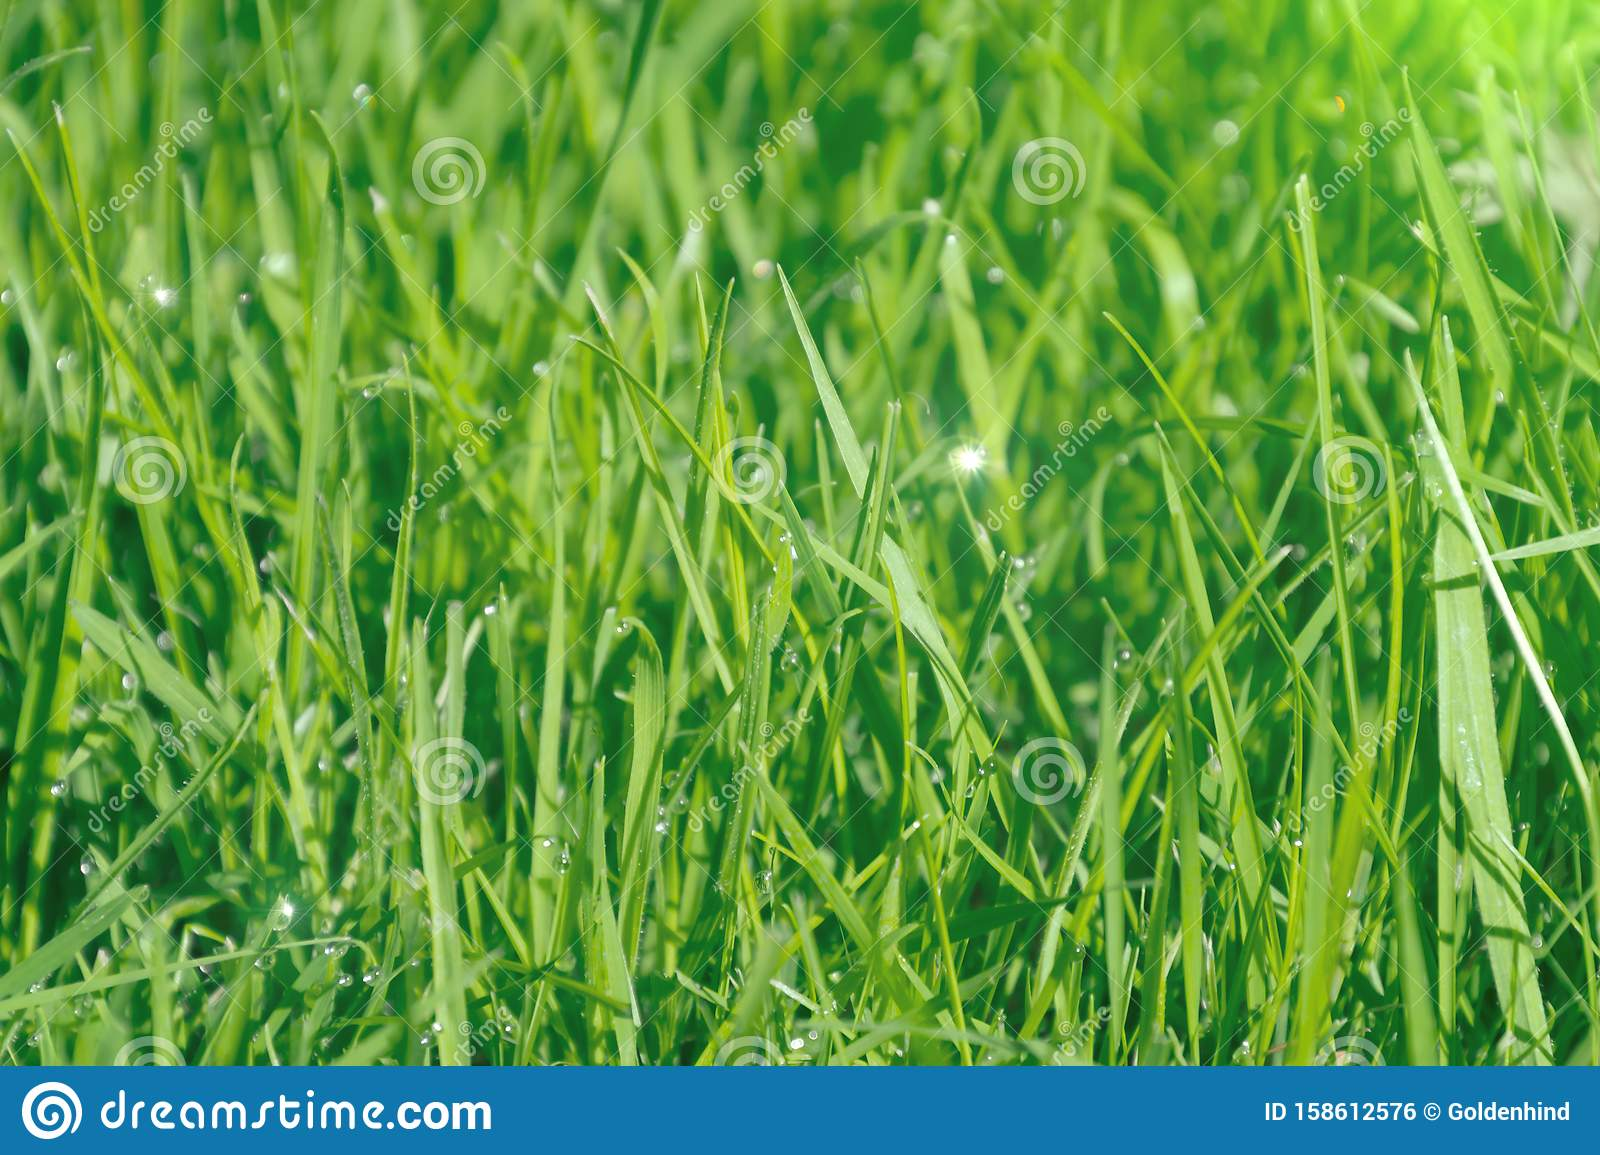 Close up of fresh dew drops on blades of grass in bright morning sunlight